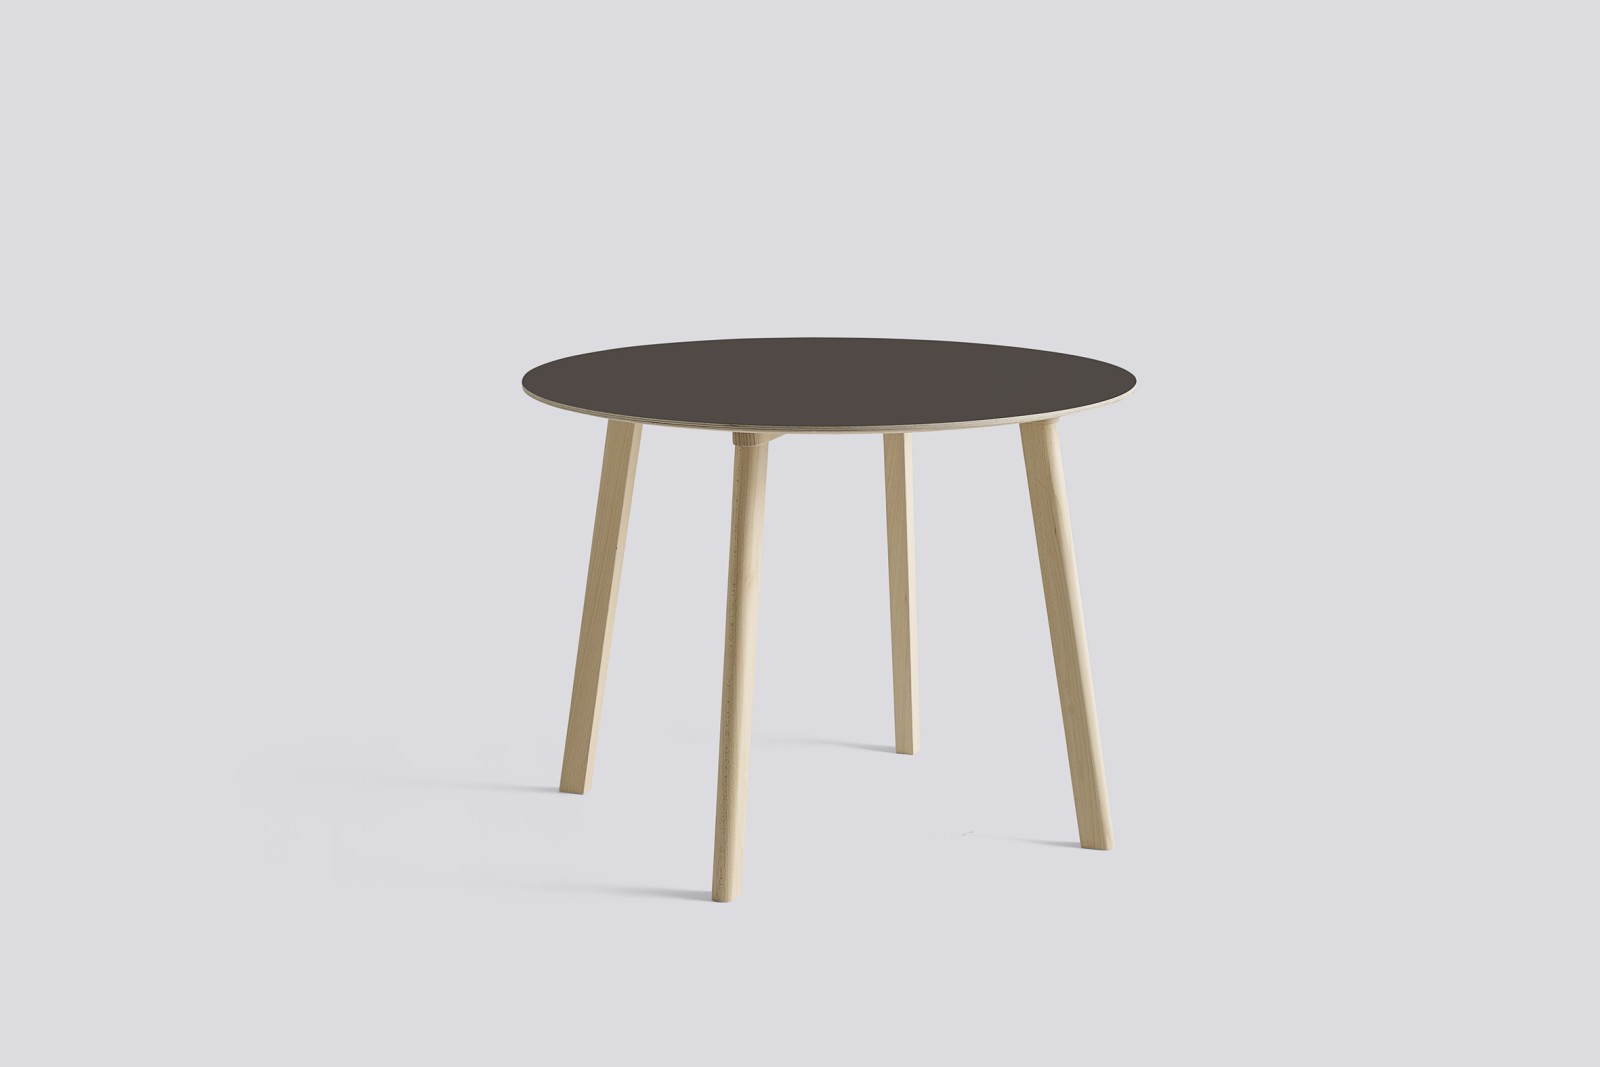 Copenhague Deux (CPH 220) Round Dining Table Beige Grey Laminate Top, Untreated Beech Base, 98cm